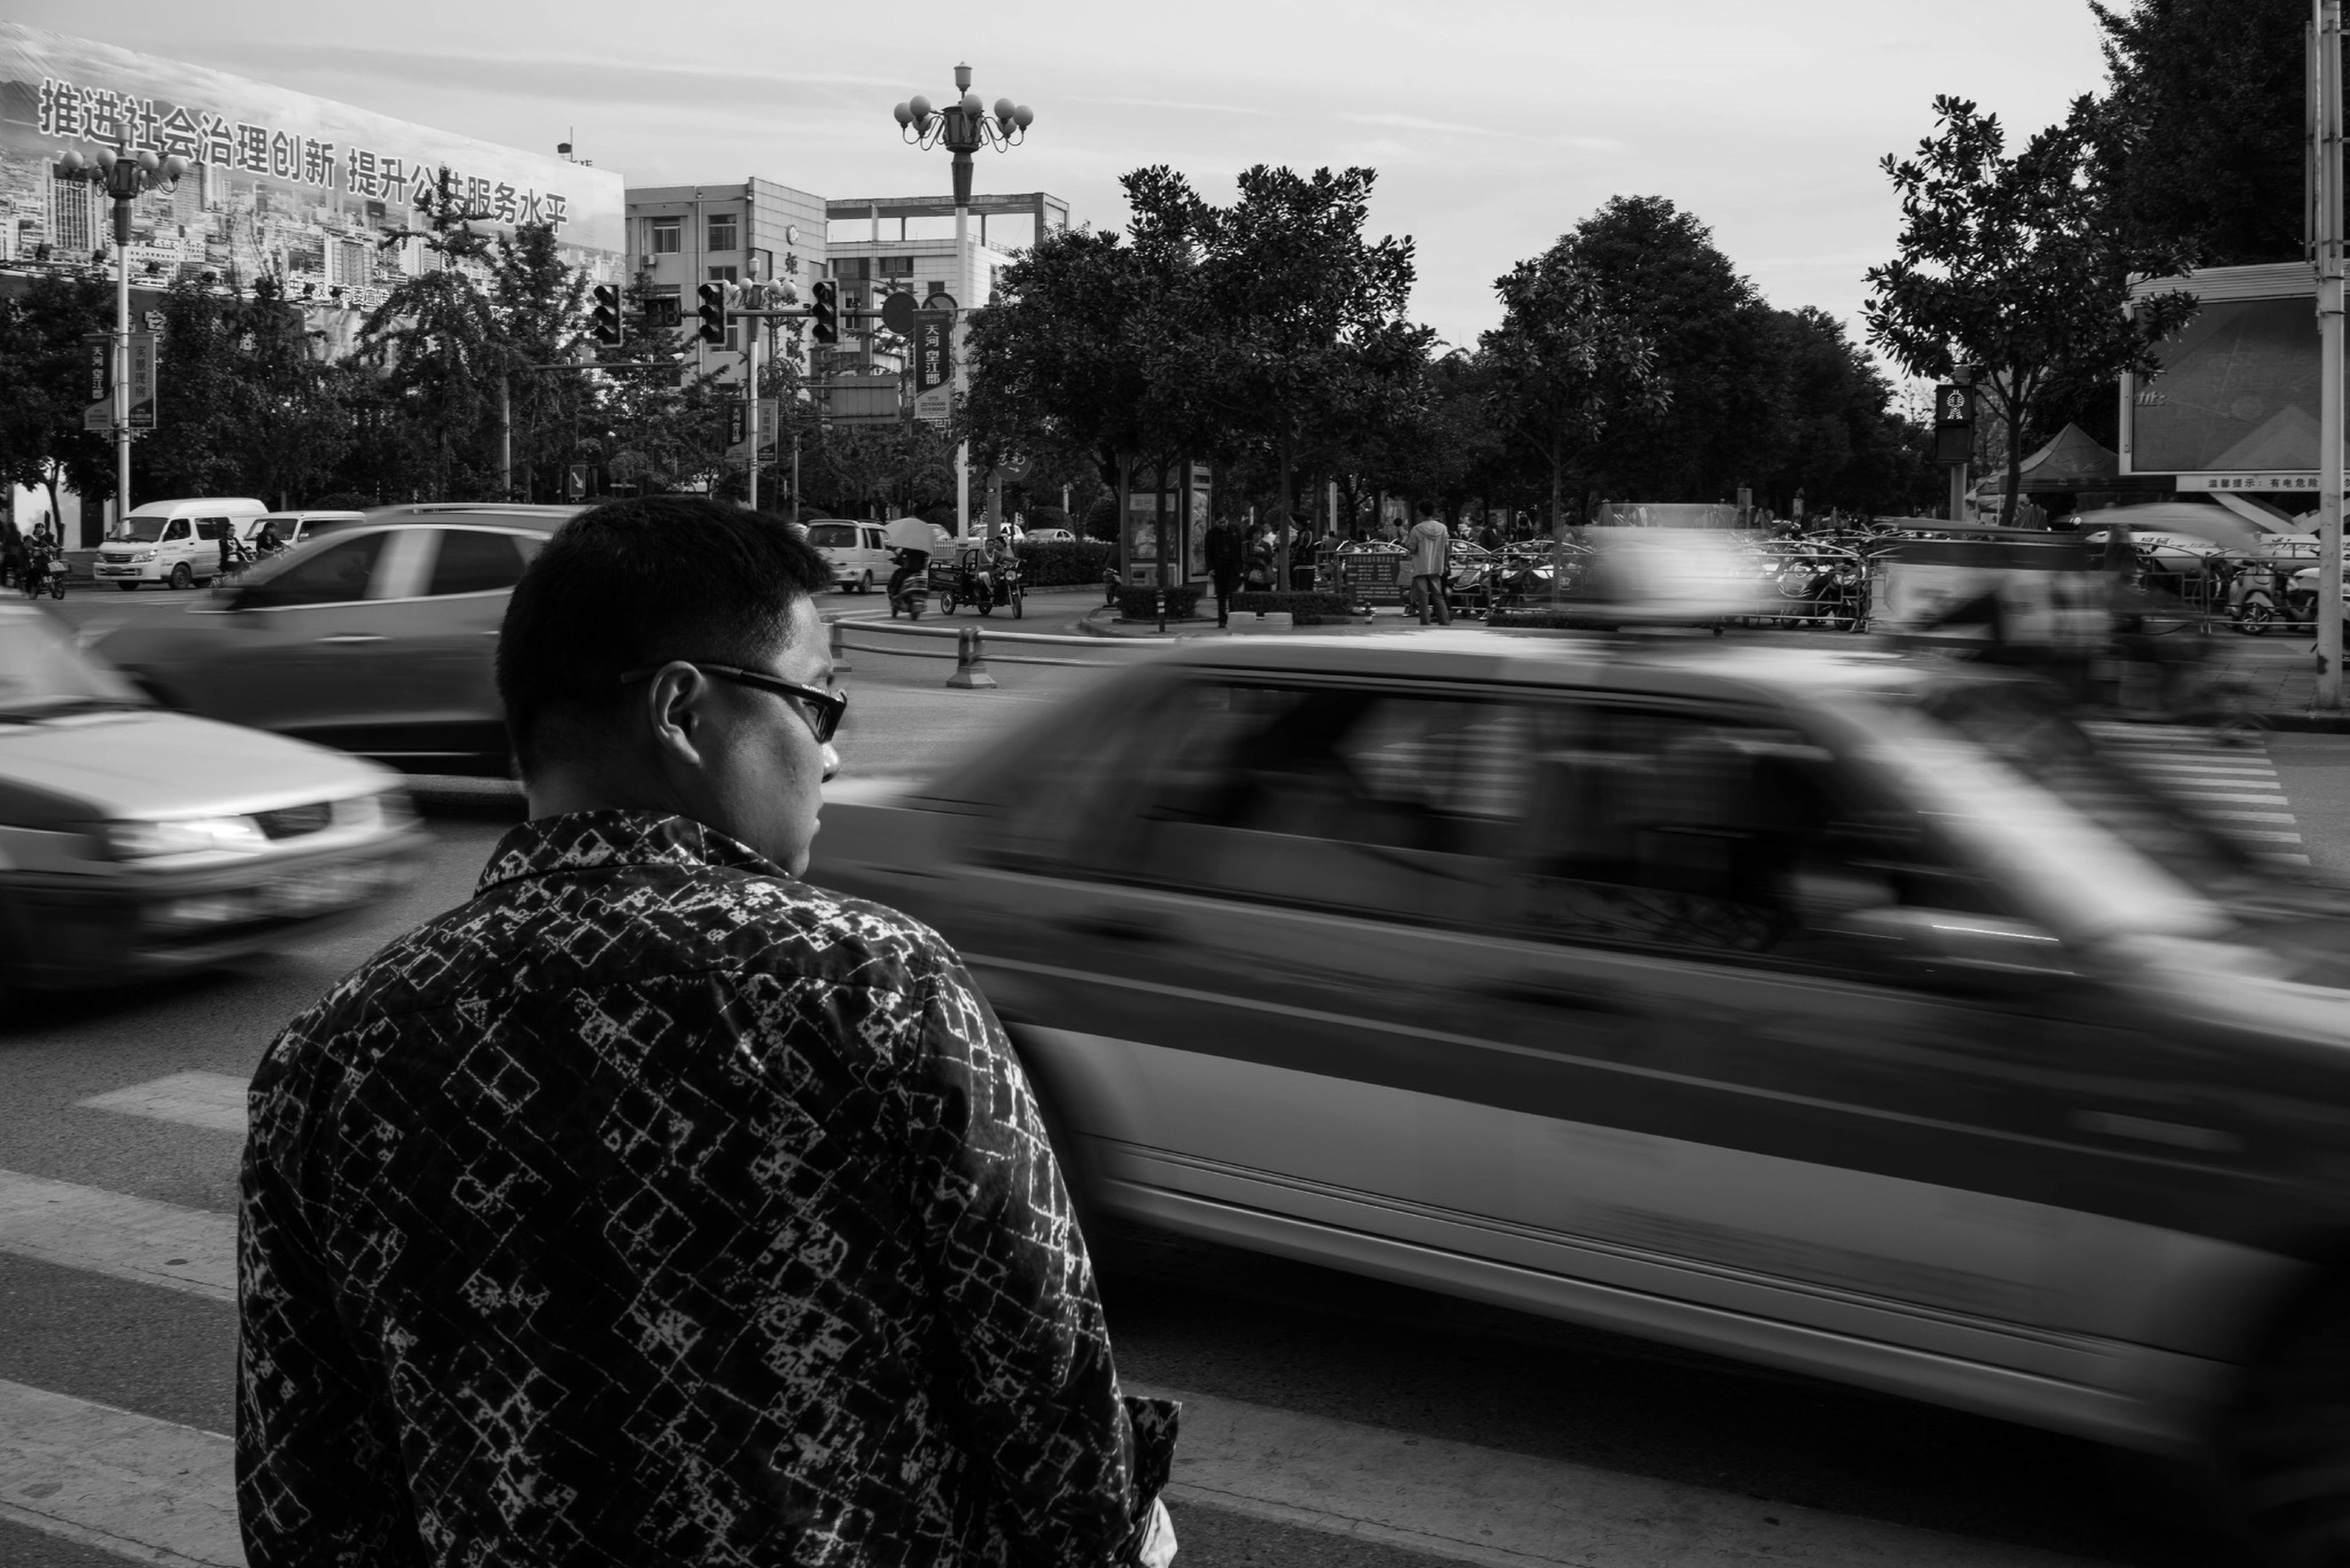 transportation, mode of transport, lifestyles, land vehicle, rear view, car, leisure activity, travel, tree, person, men, public transportation, street, railroad track, vehicle interior, on the move, city life, casual clothing